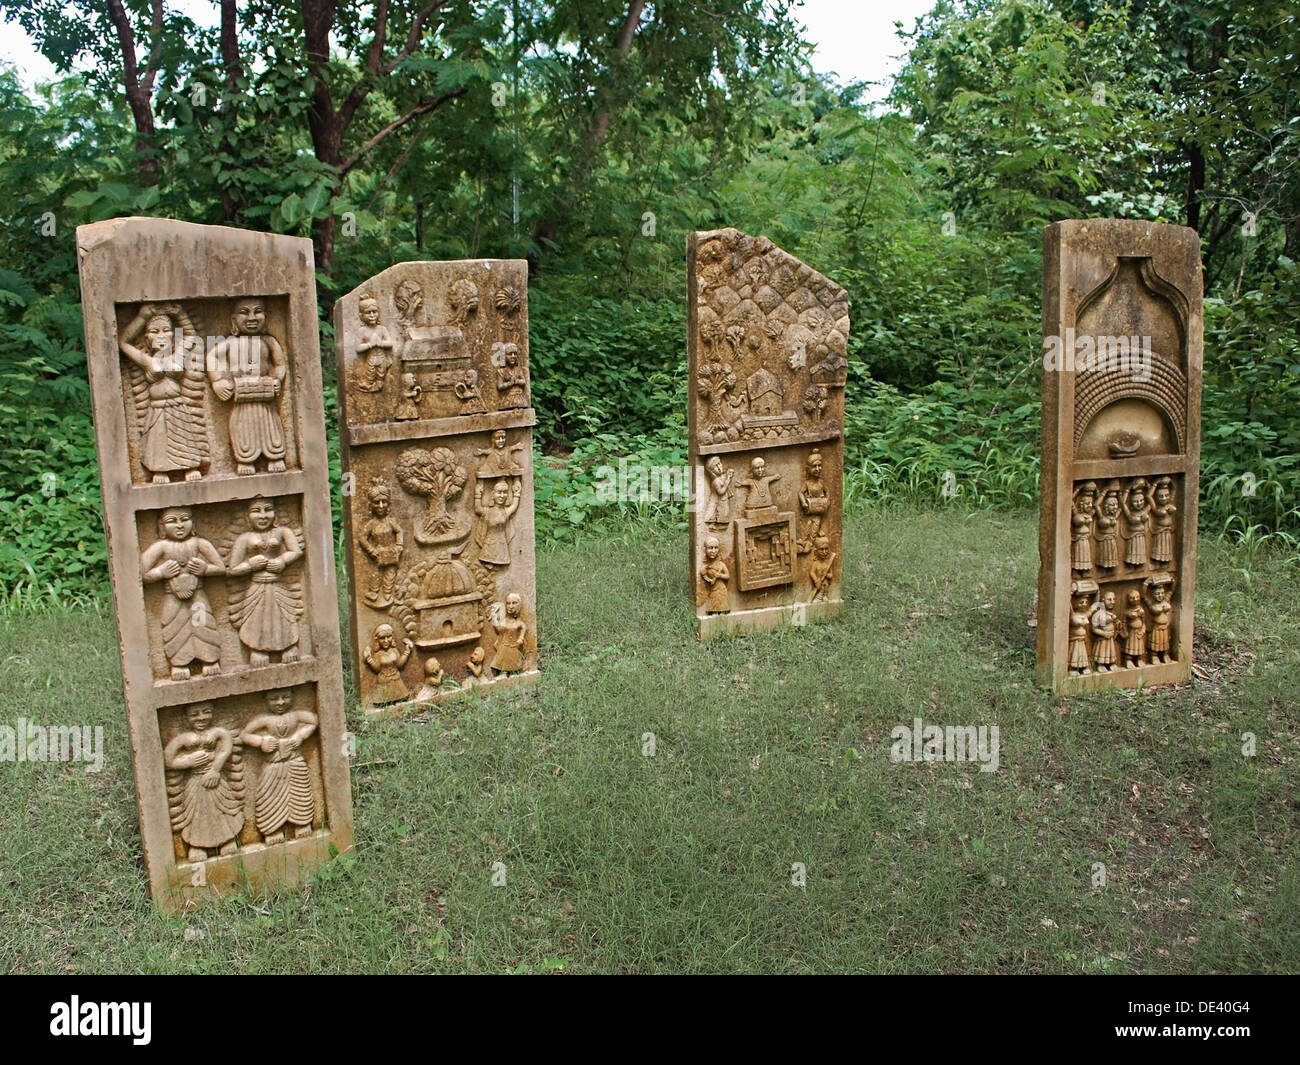 The myth and ritual of Ganagaur is carved on a slate Sirohi, Rajasthan, India - Stock Image